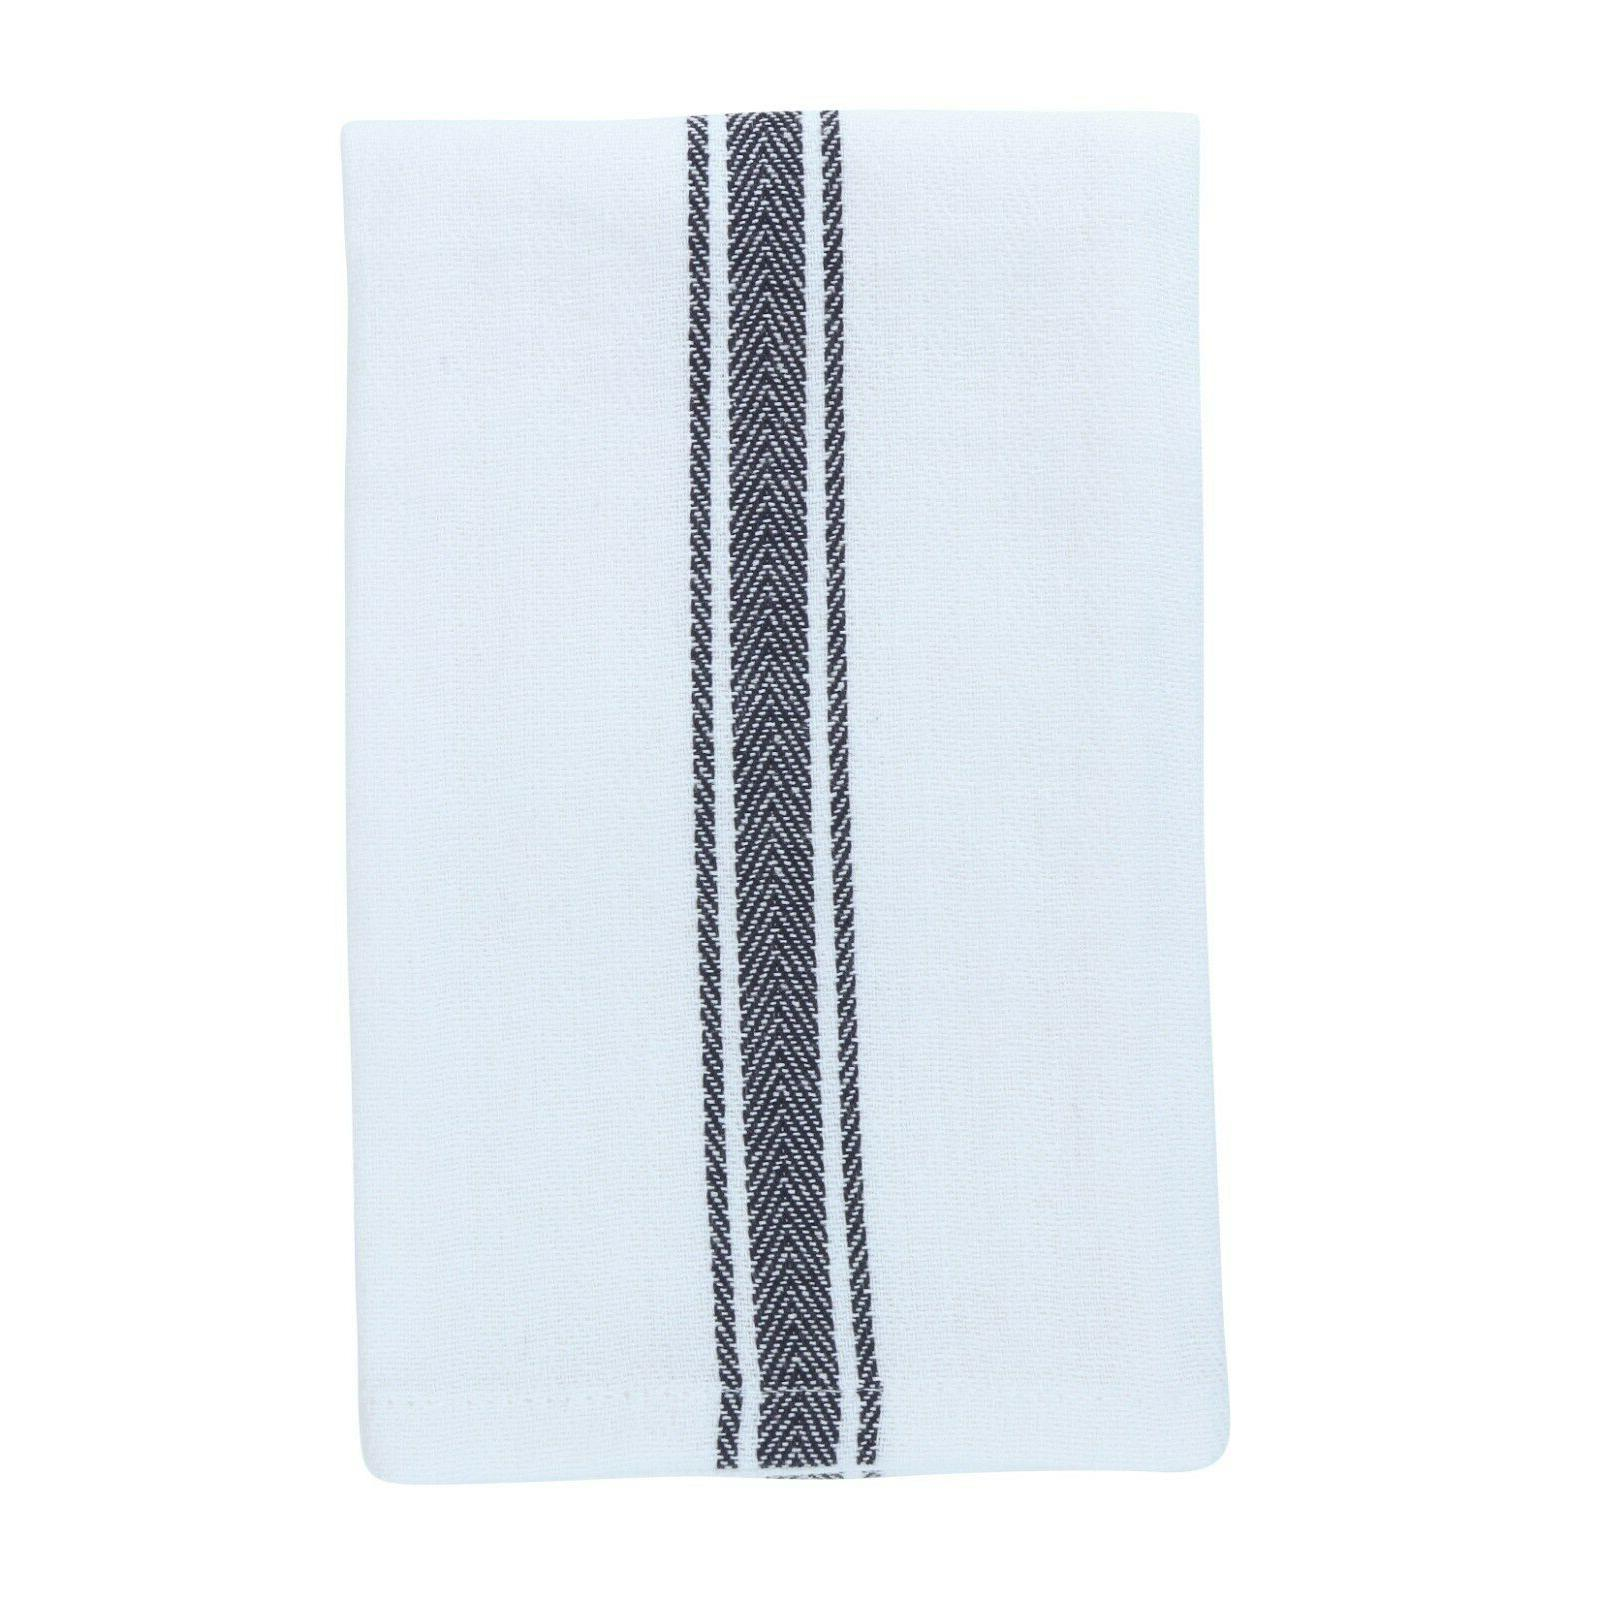 12 Pack of Striped Kitchen Dish Towels - x Color